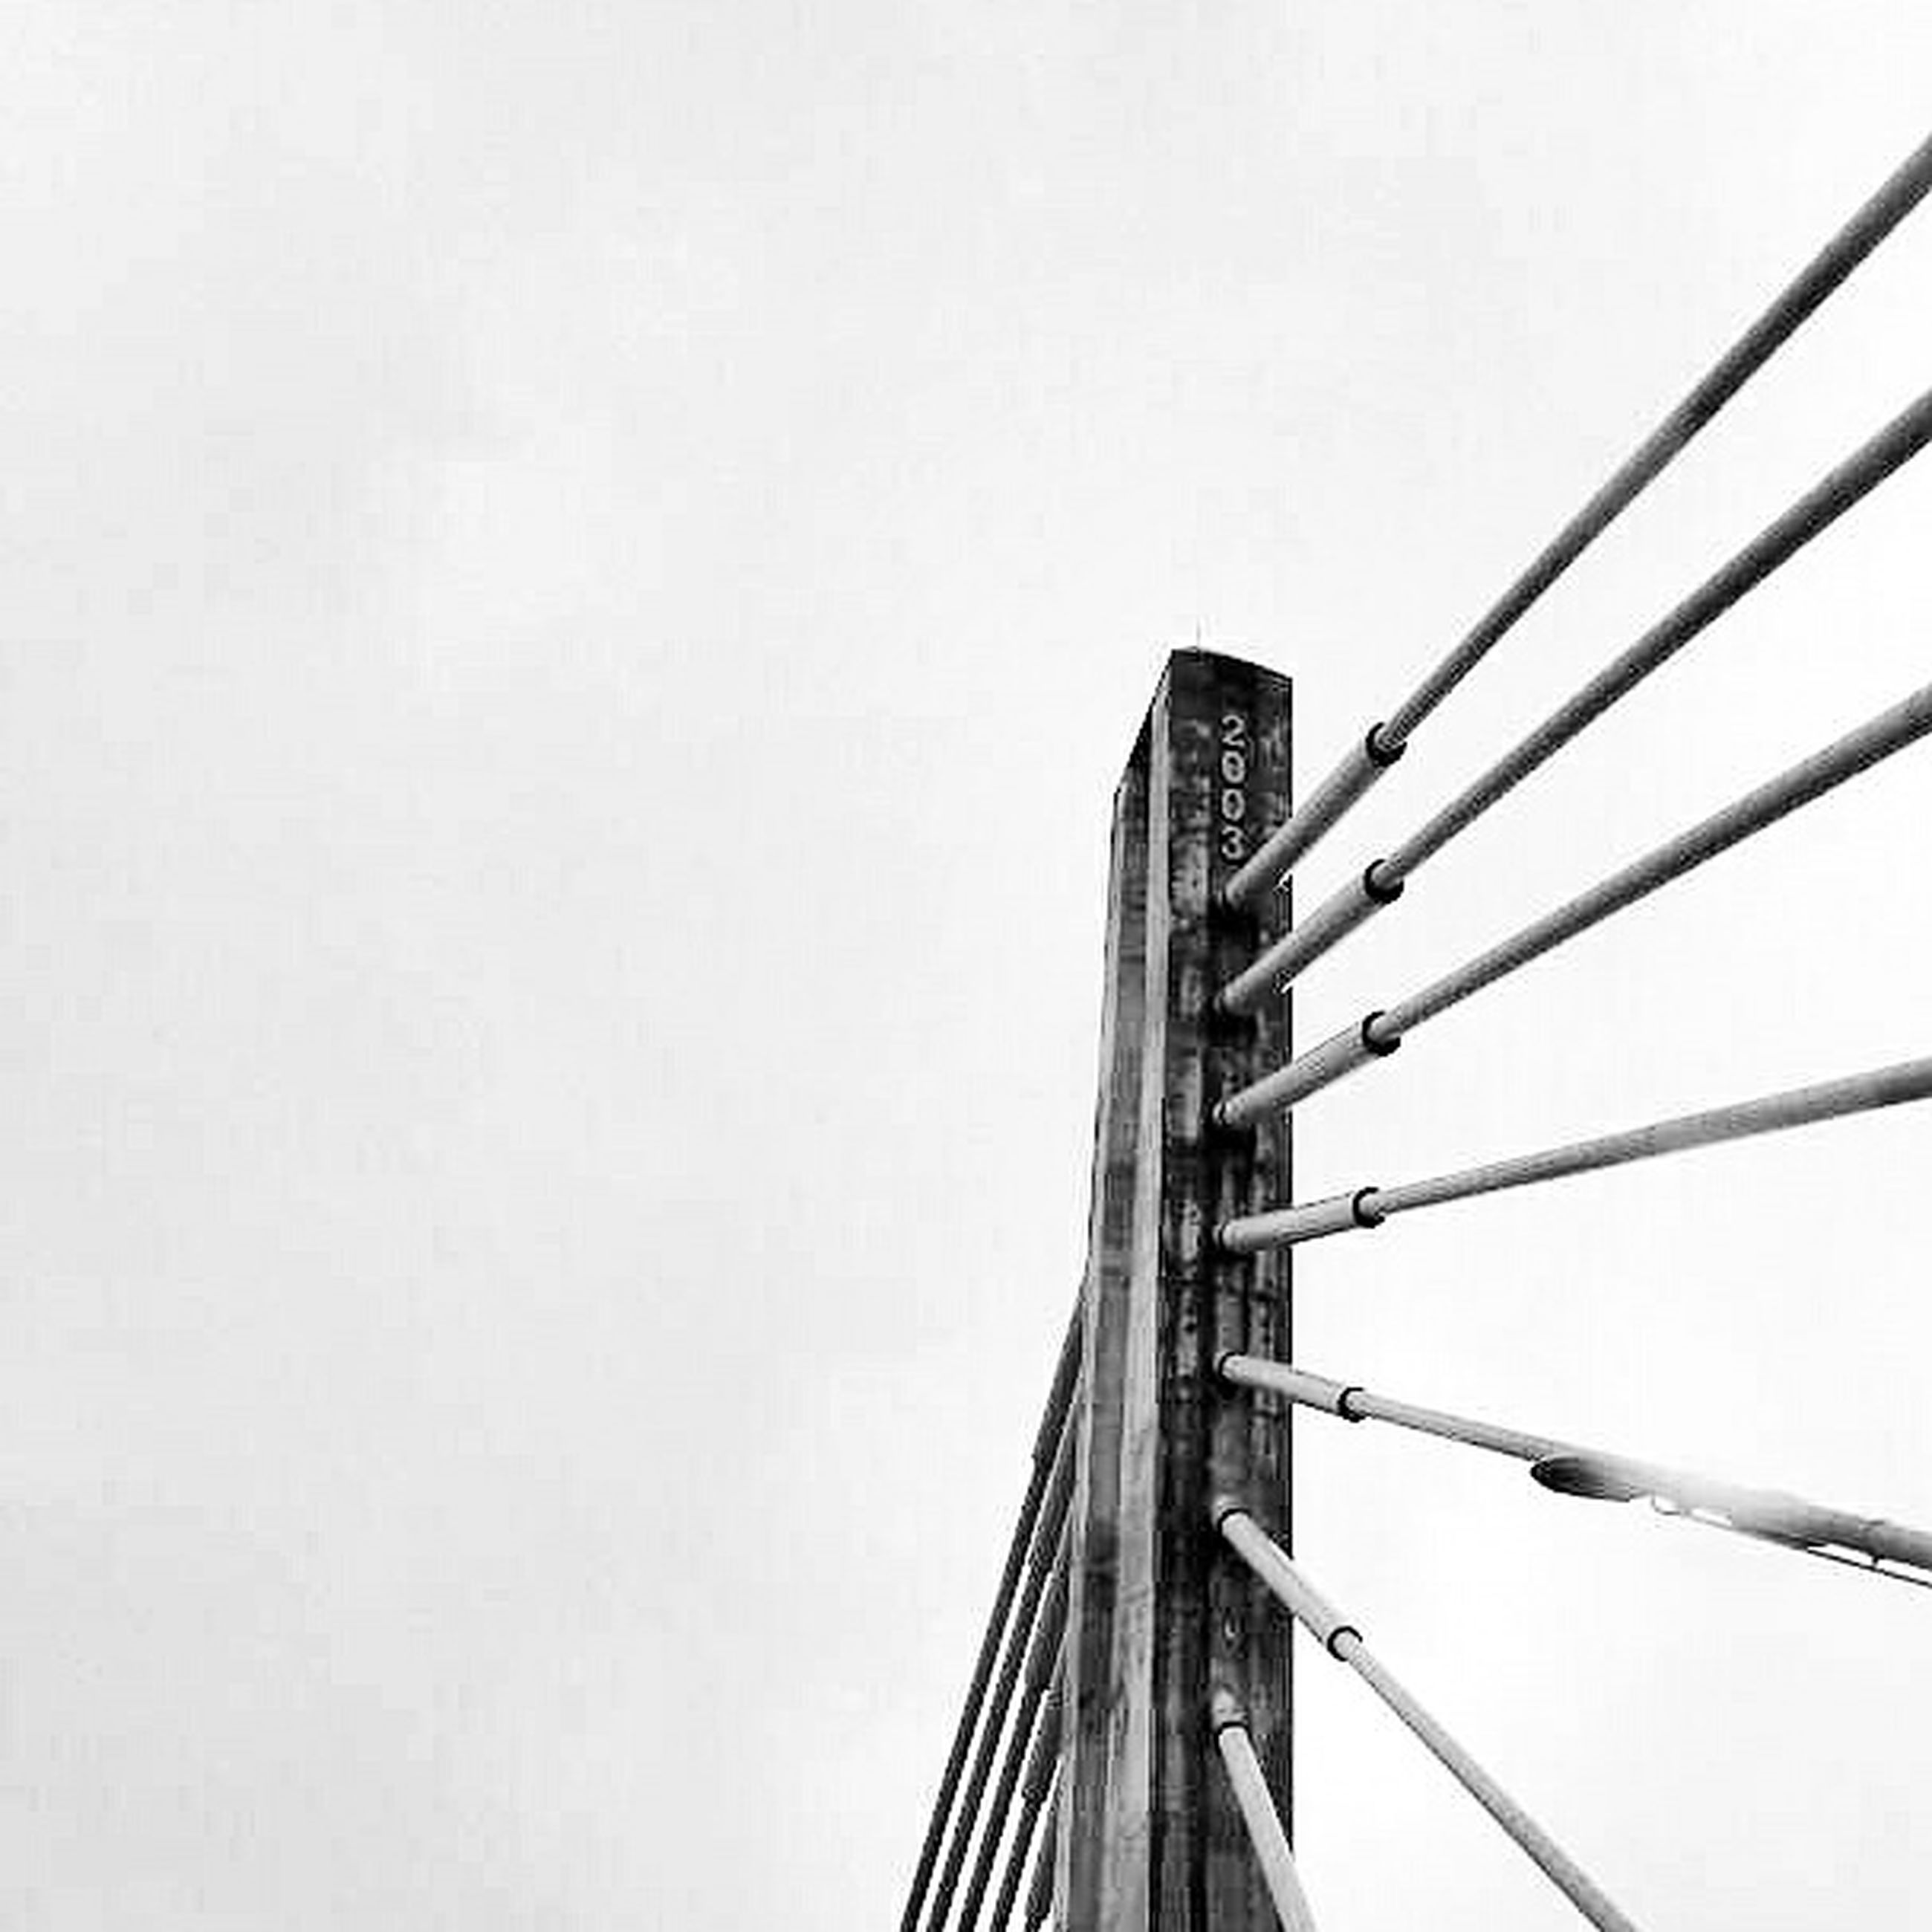 low angle view, clear sky, connection, built structure, copy space, architecture, engineering, metal, tall - high, suspension bridge, metallic, day, outdoors, no people, bridge - man made structure, tower, development, high section, sky, tall